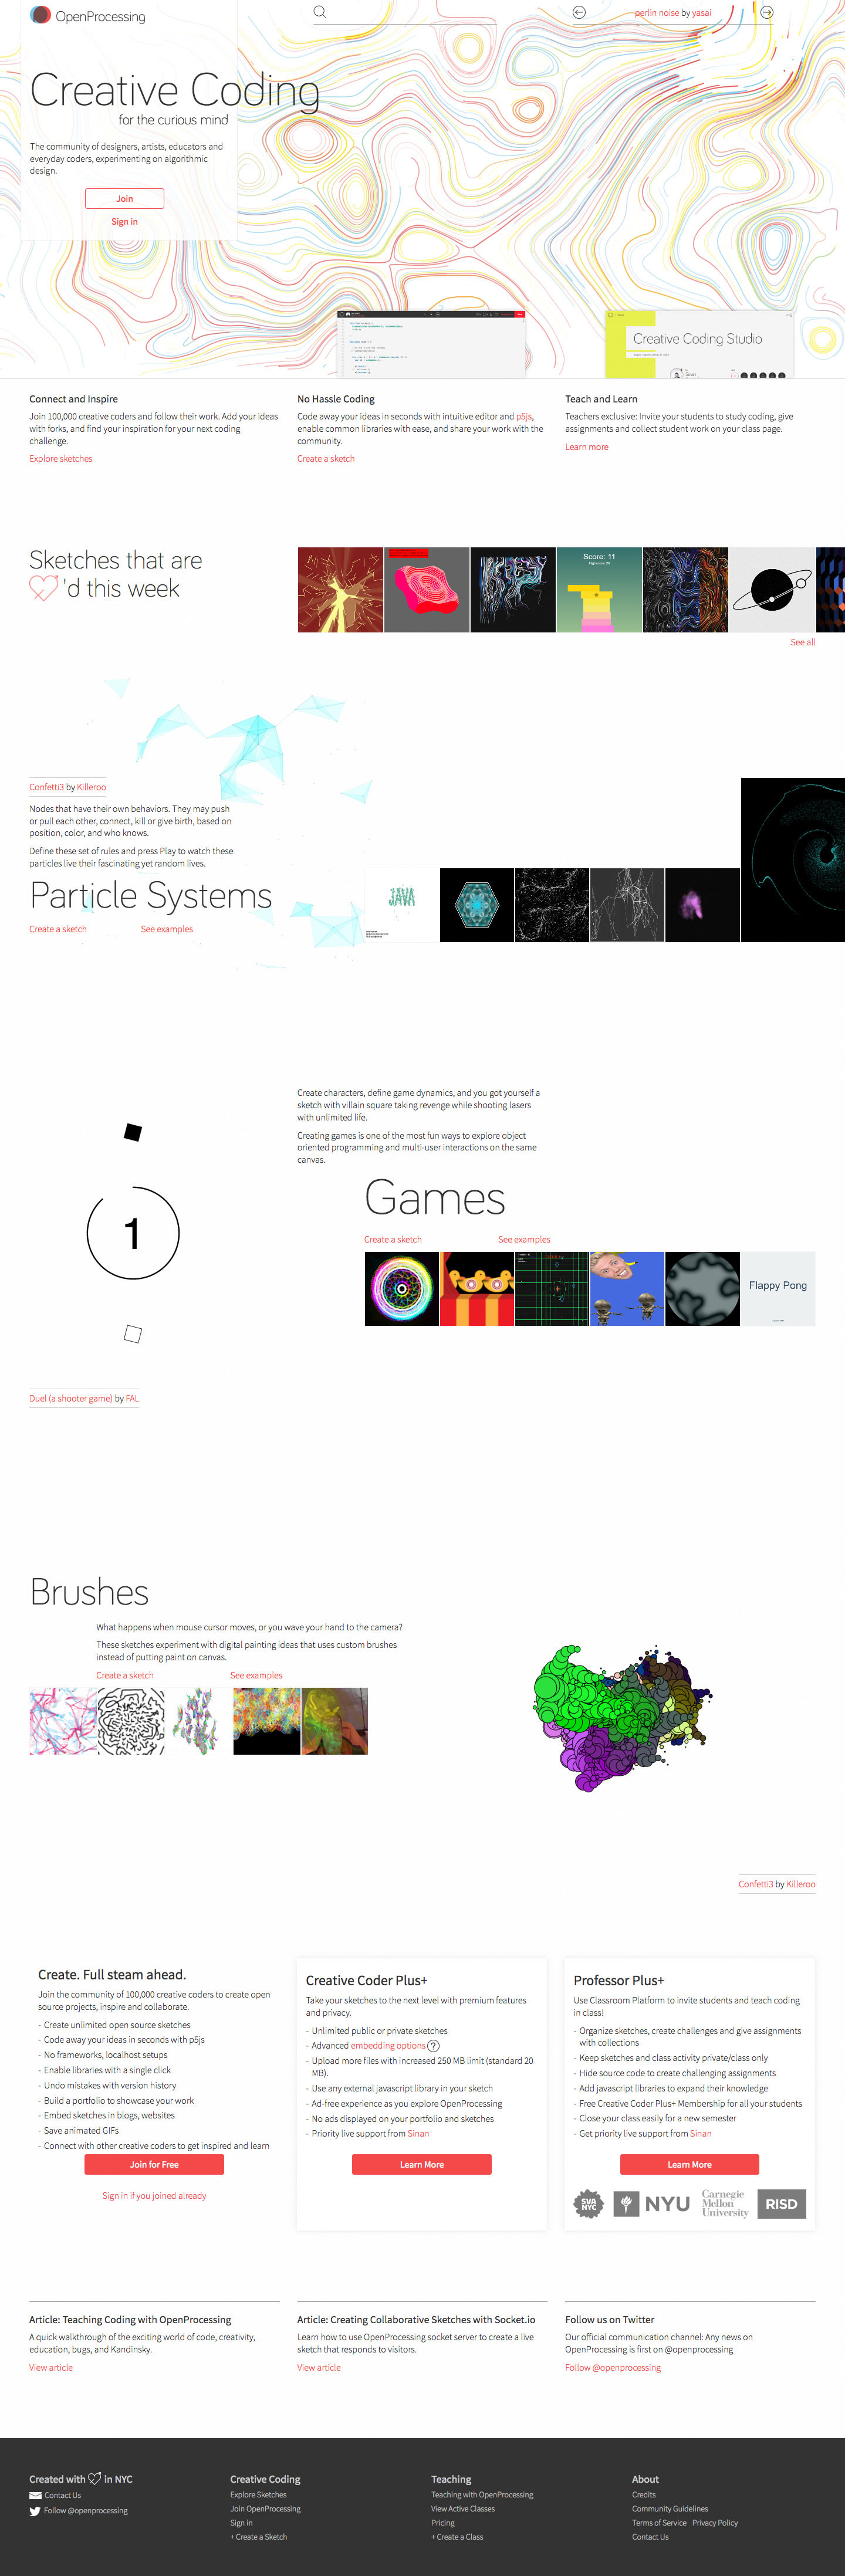 OpenProcessing - A Social Creative Coding Website for